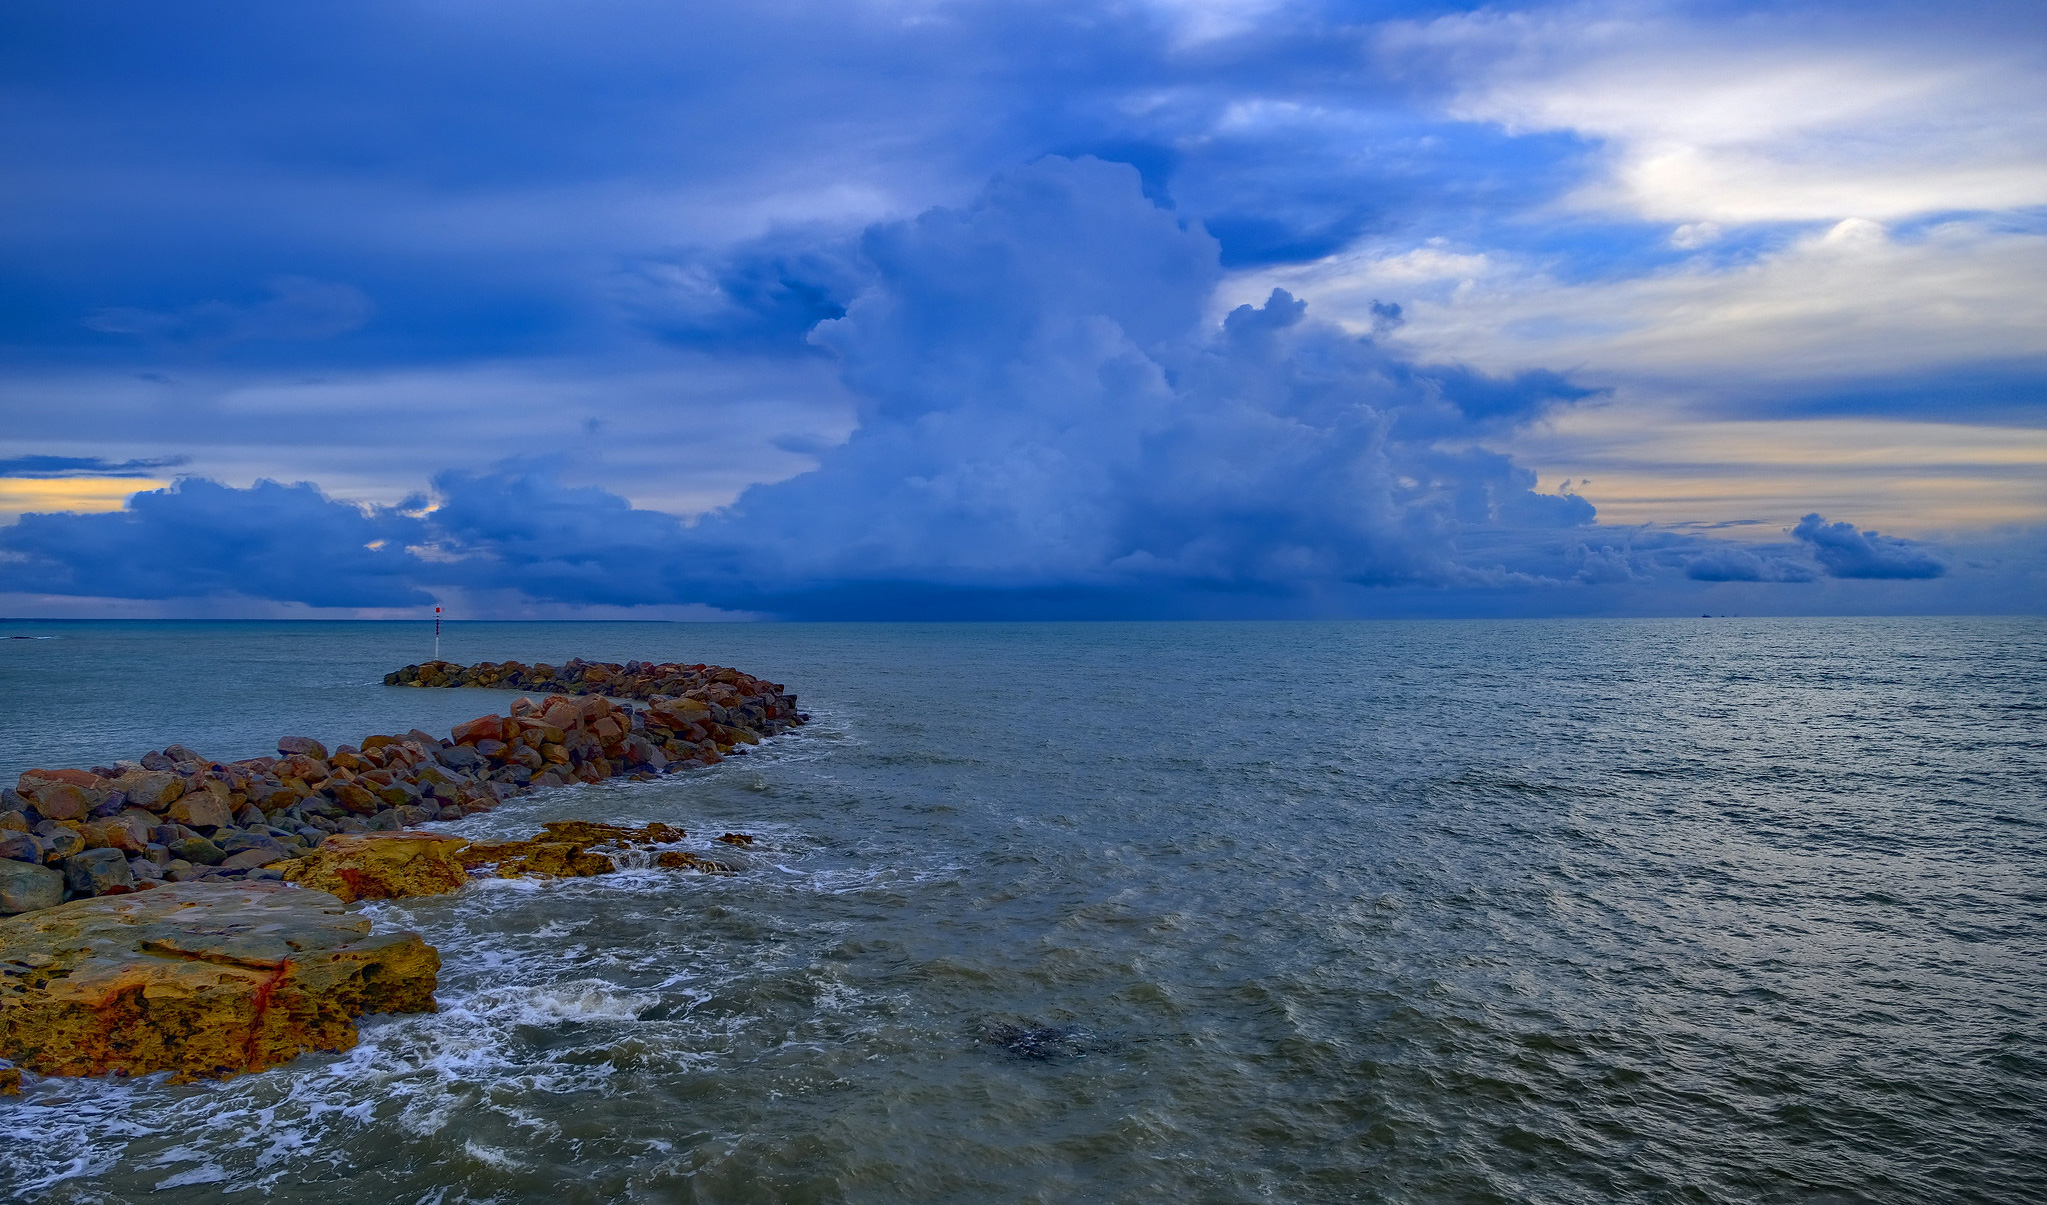 A monsoon off the coast of Darwin Harbour